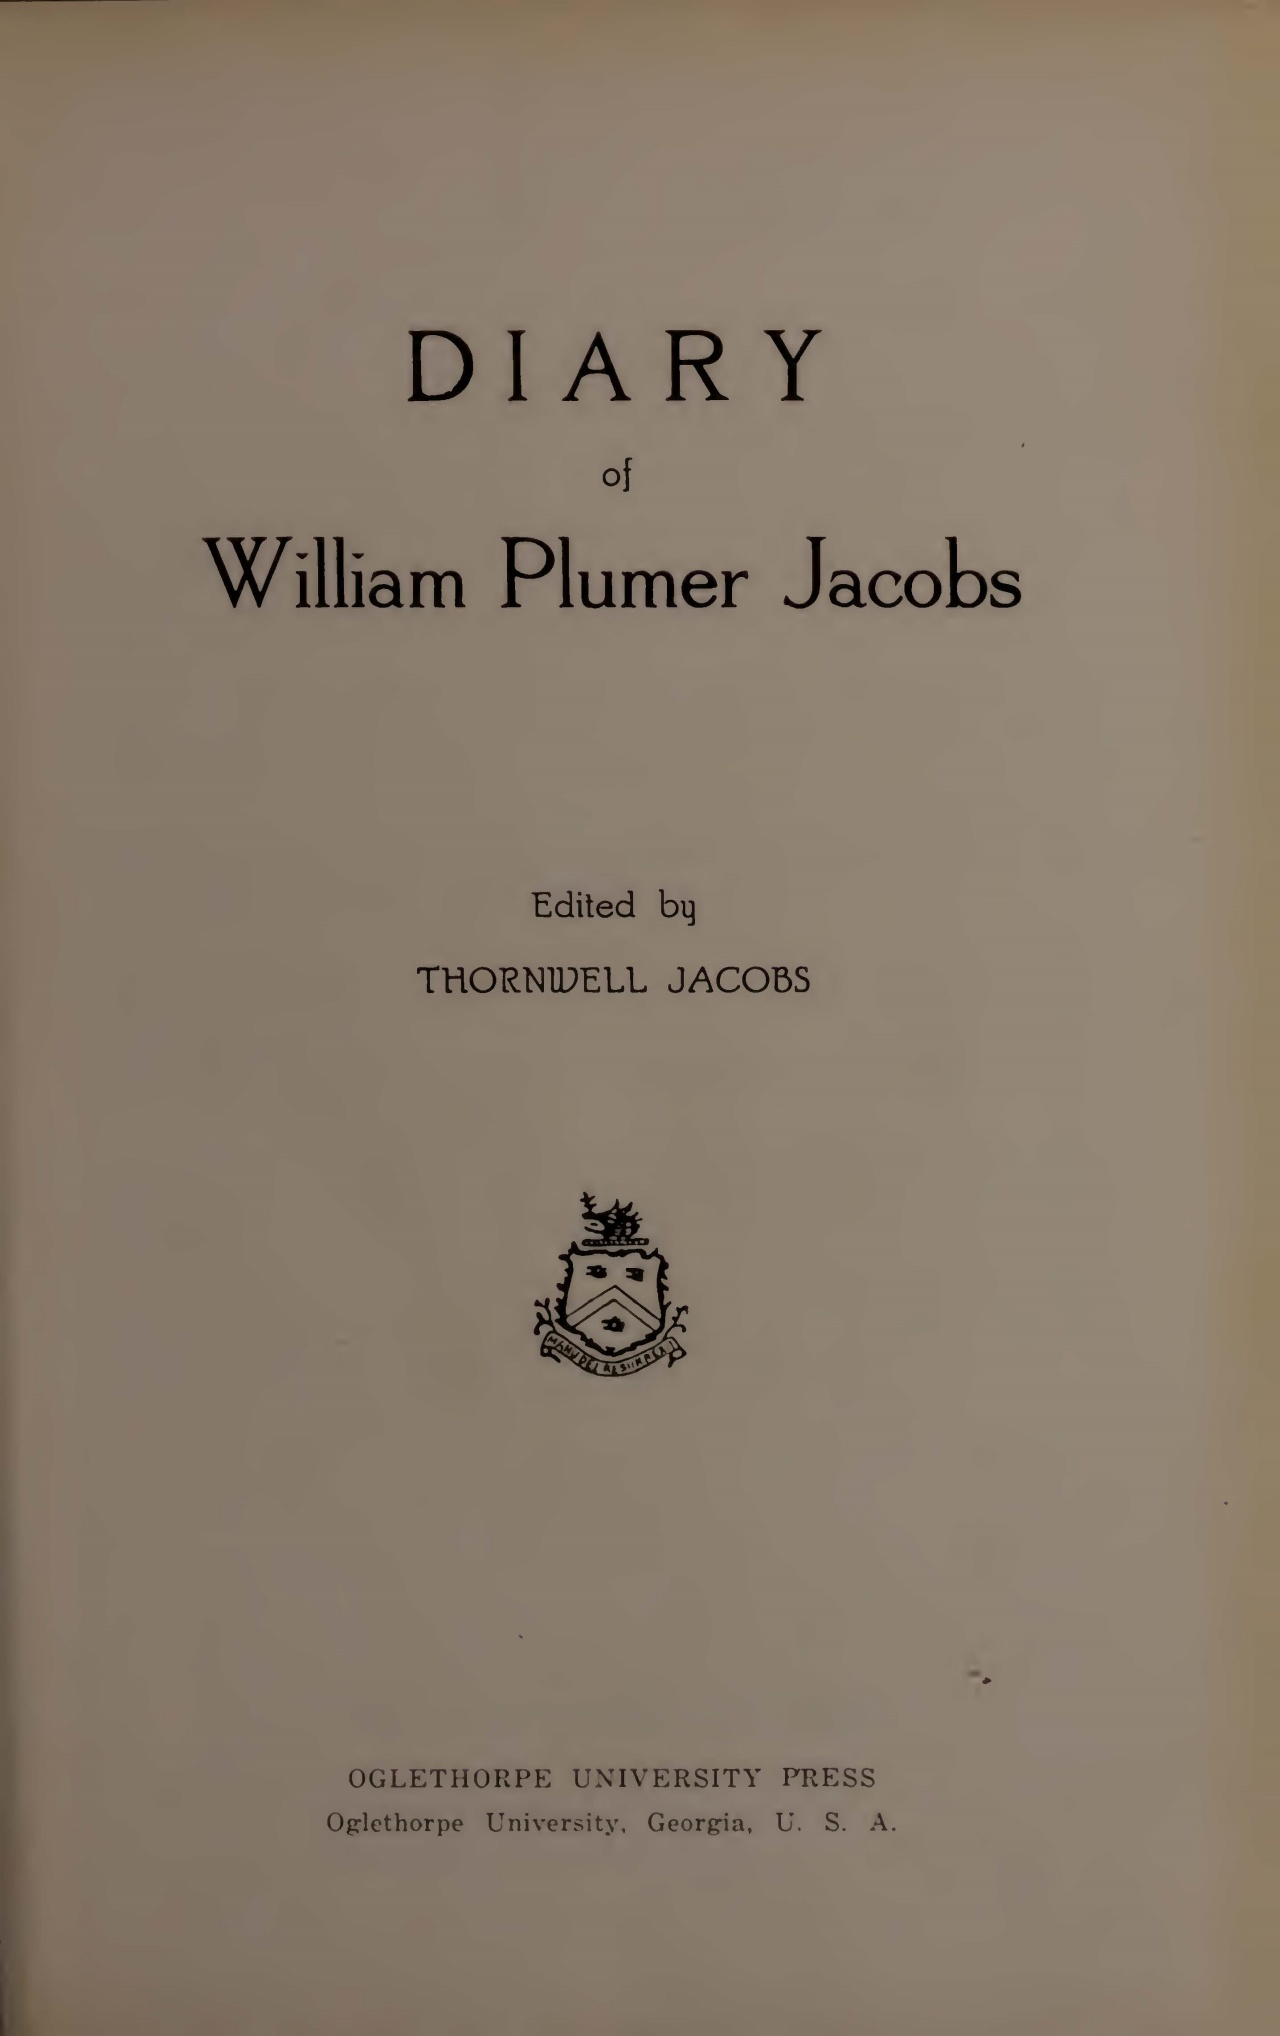 Jacobs, Thornwell, The Diary of William Plumer Jacobs Title Page.jpg